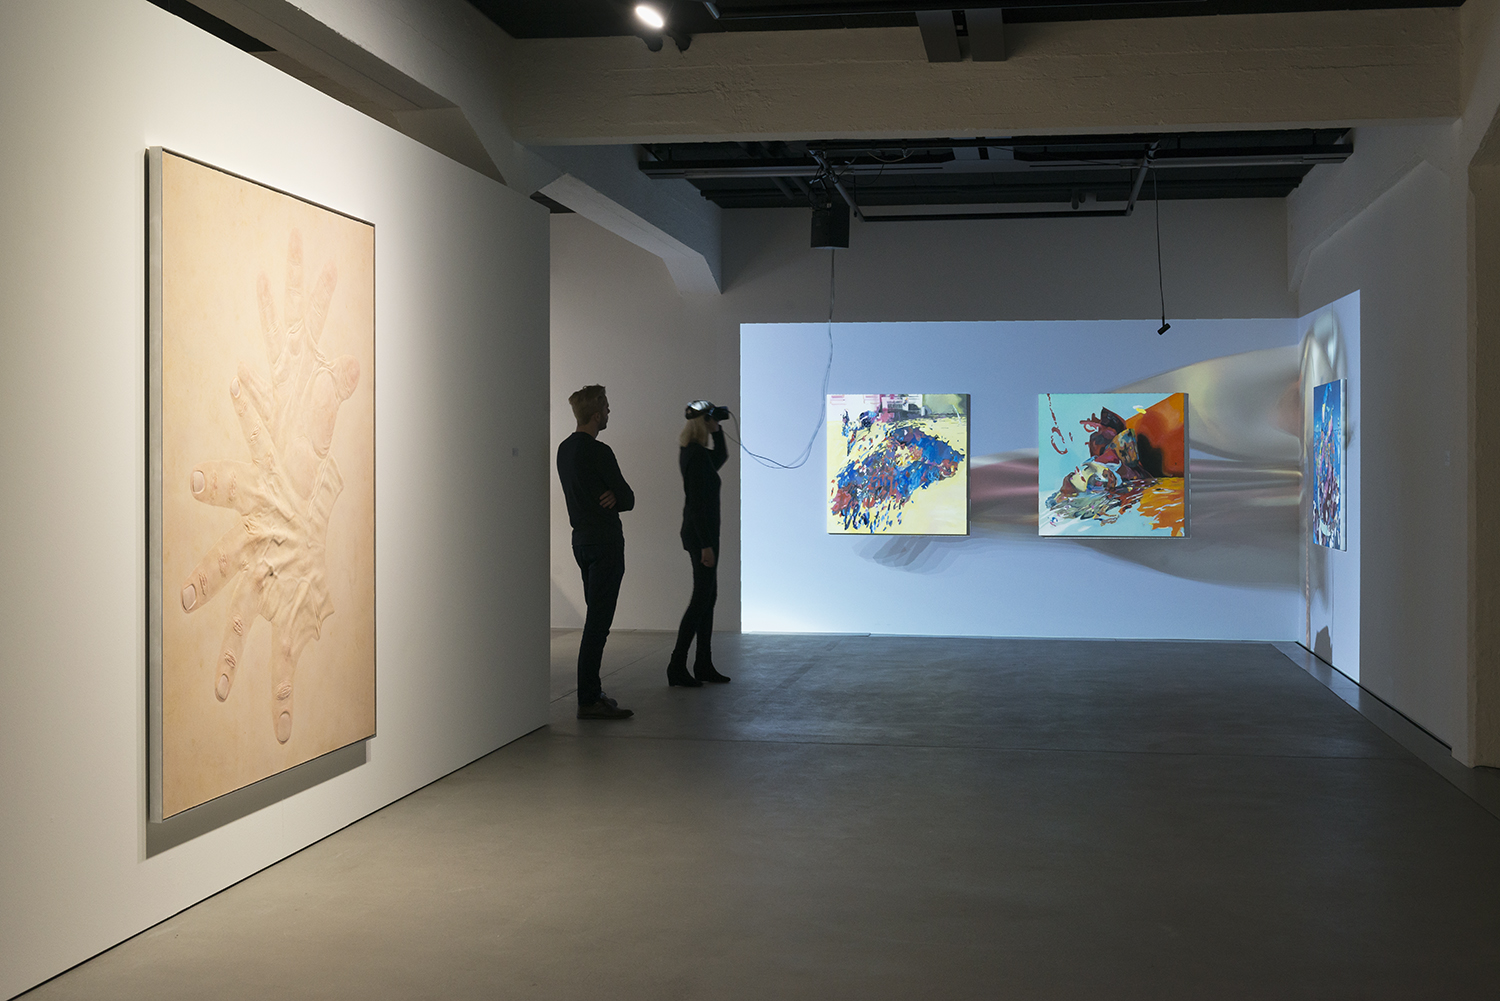 Exhibition view THE UNFRAMED WORLD at HeK Basel, artworks: Mélodie Mousset, Pattern For Hysterical Change, 2017 // Rachel Rossin, Just A Nose, 2016 / Photo by Franz Wamhof